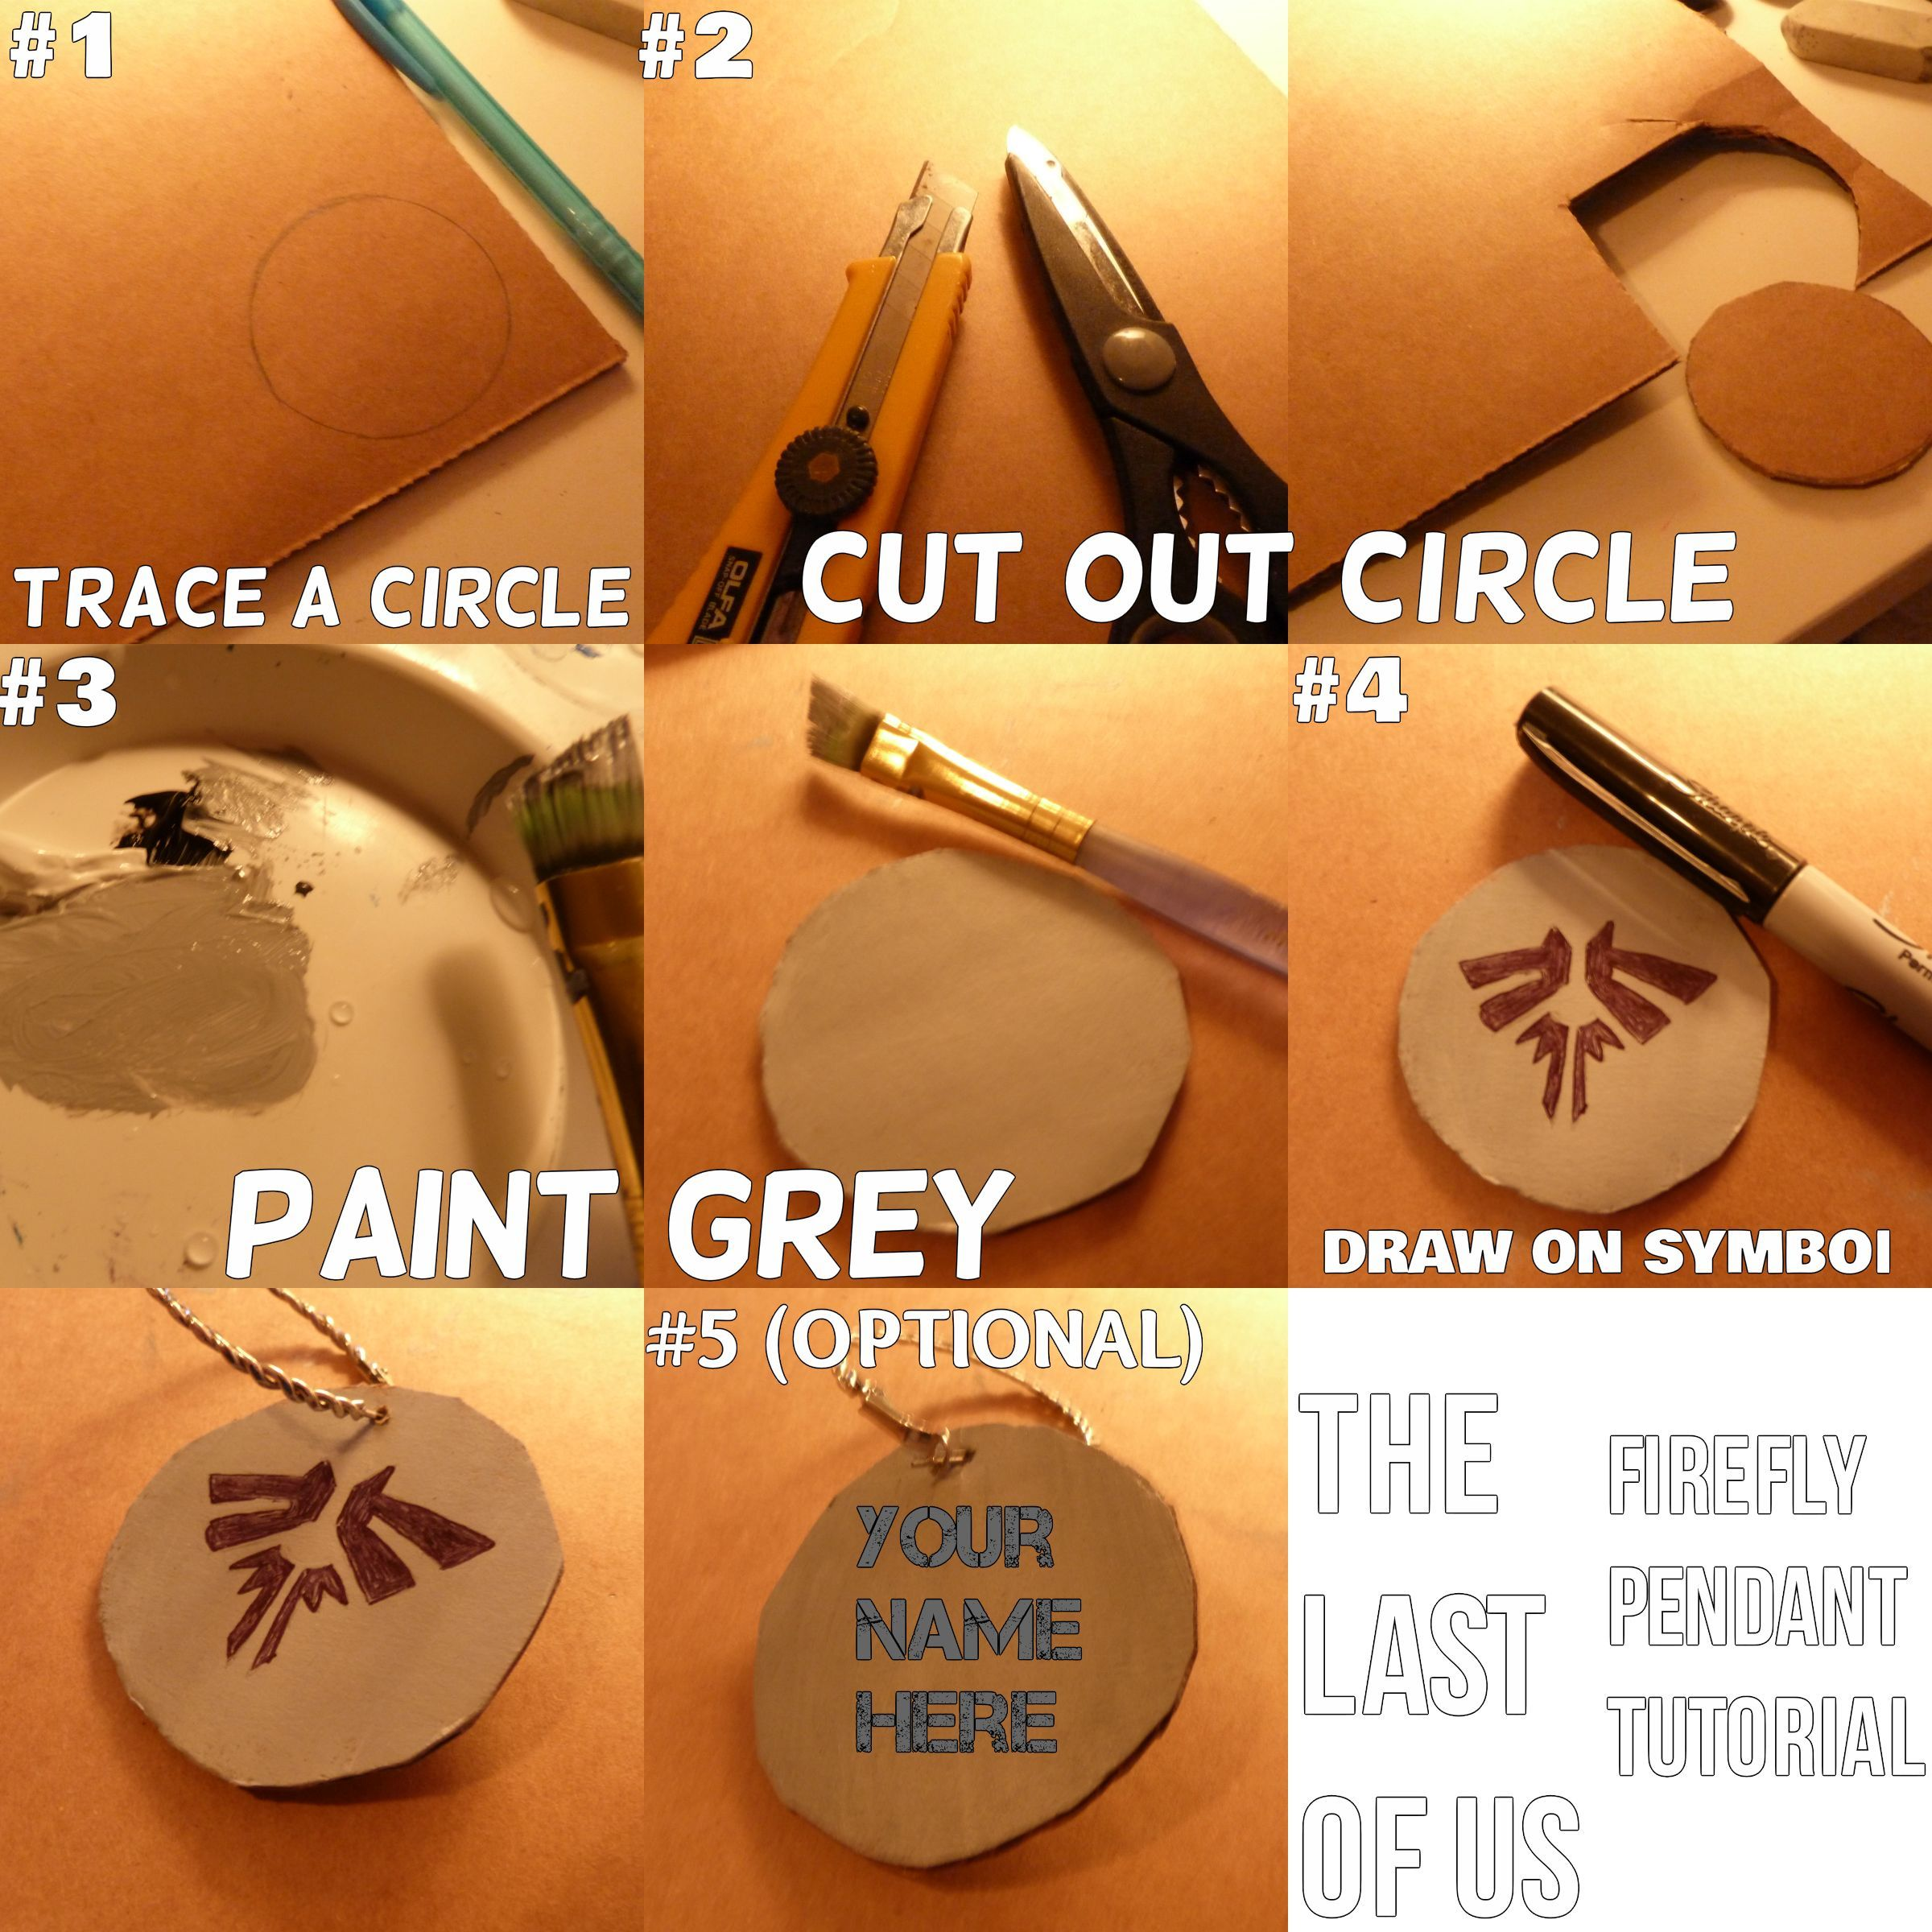 The last of us firefly pendant diy super easy tutorial diy the last of us firefly pendant diy super easy tutorial mozeypictures Gallery